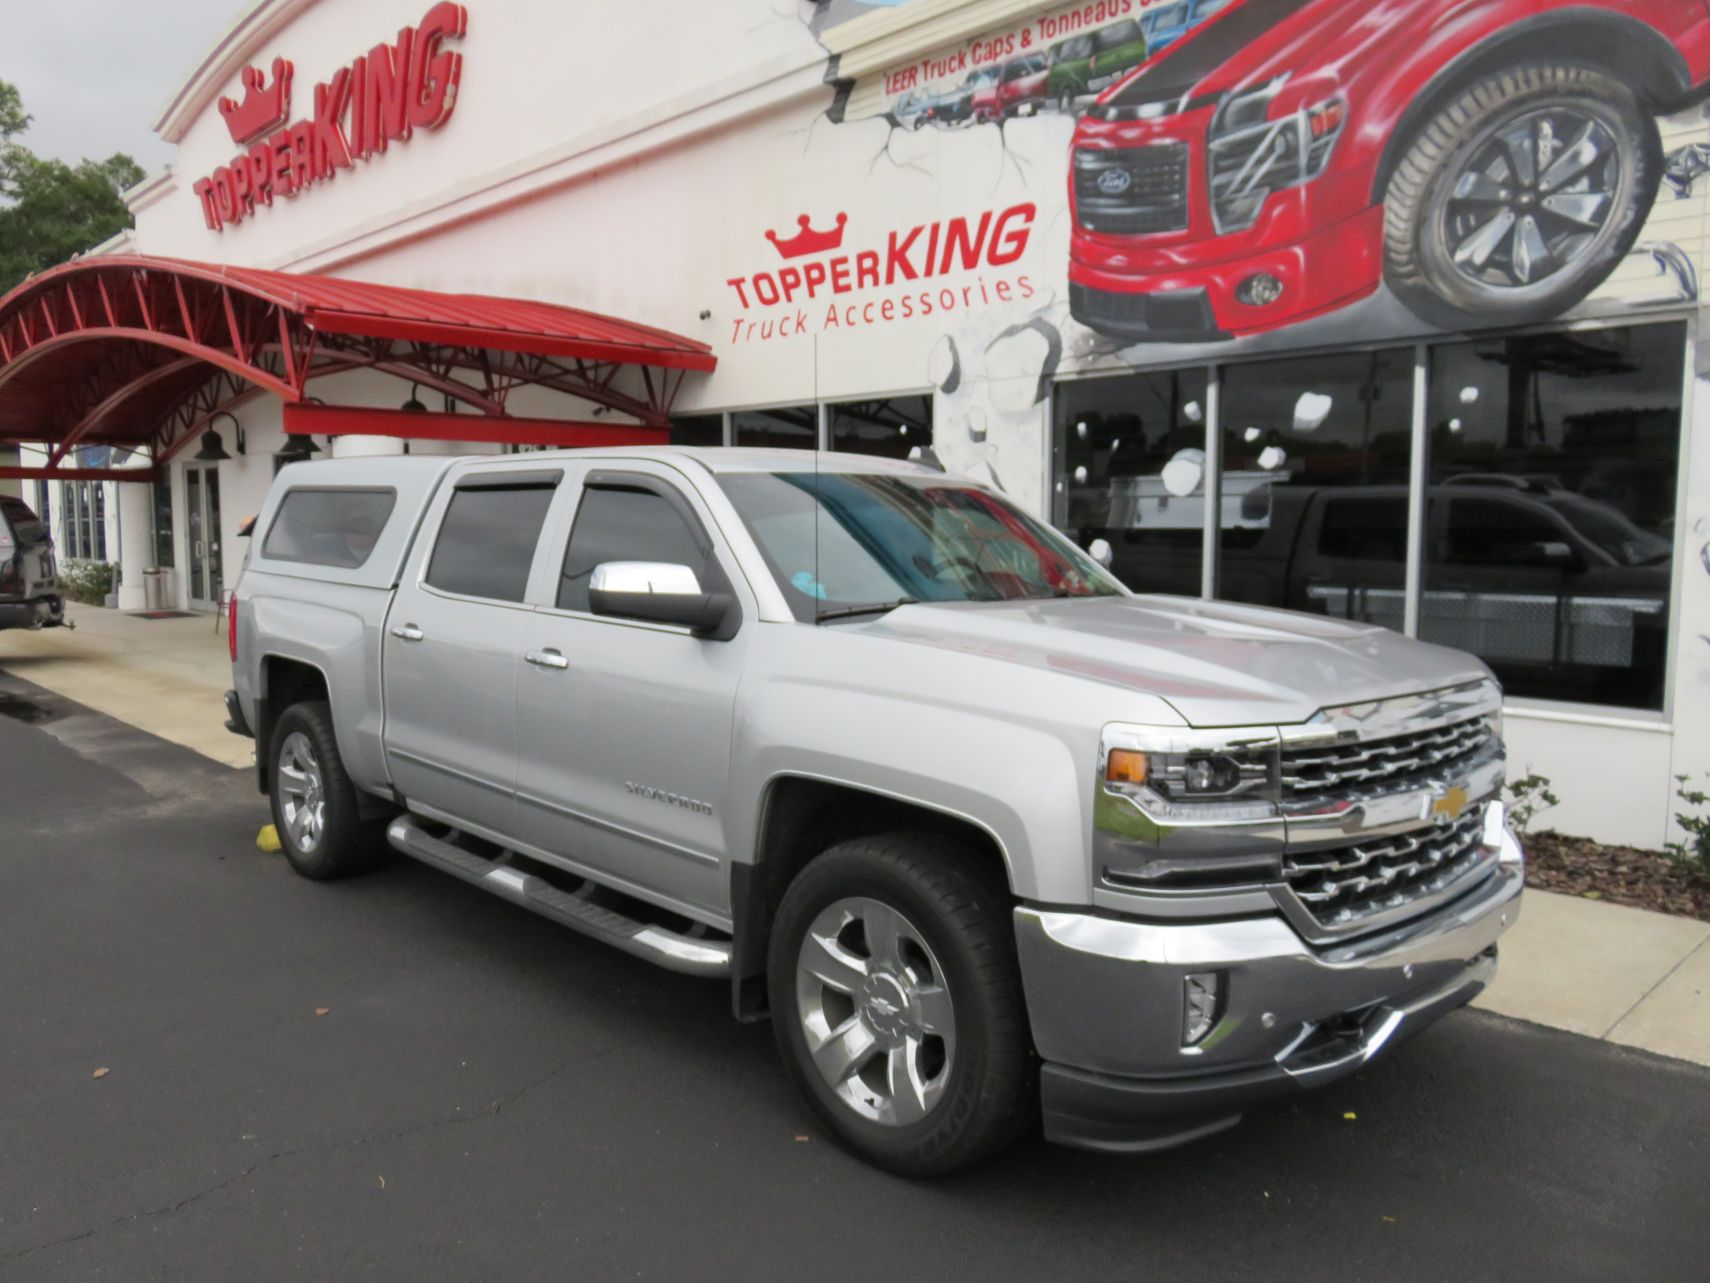 2018 Silver Chevy Silverado Ranch Echo, Nerf Bars, Hitch, Vent Visors by TopperKING in Brandon, FL 813-689-2449 or Clearwater, FL 727-530-9066. Call today!